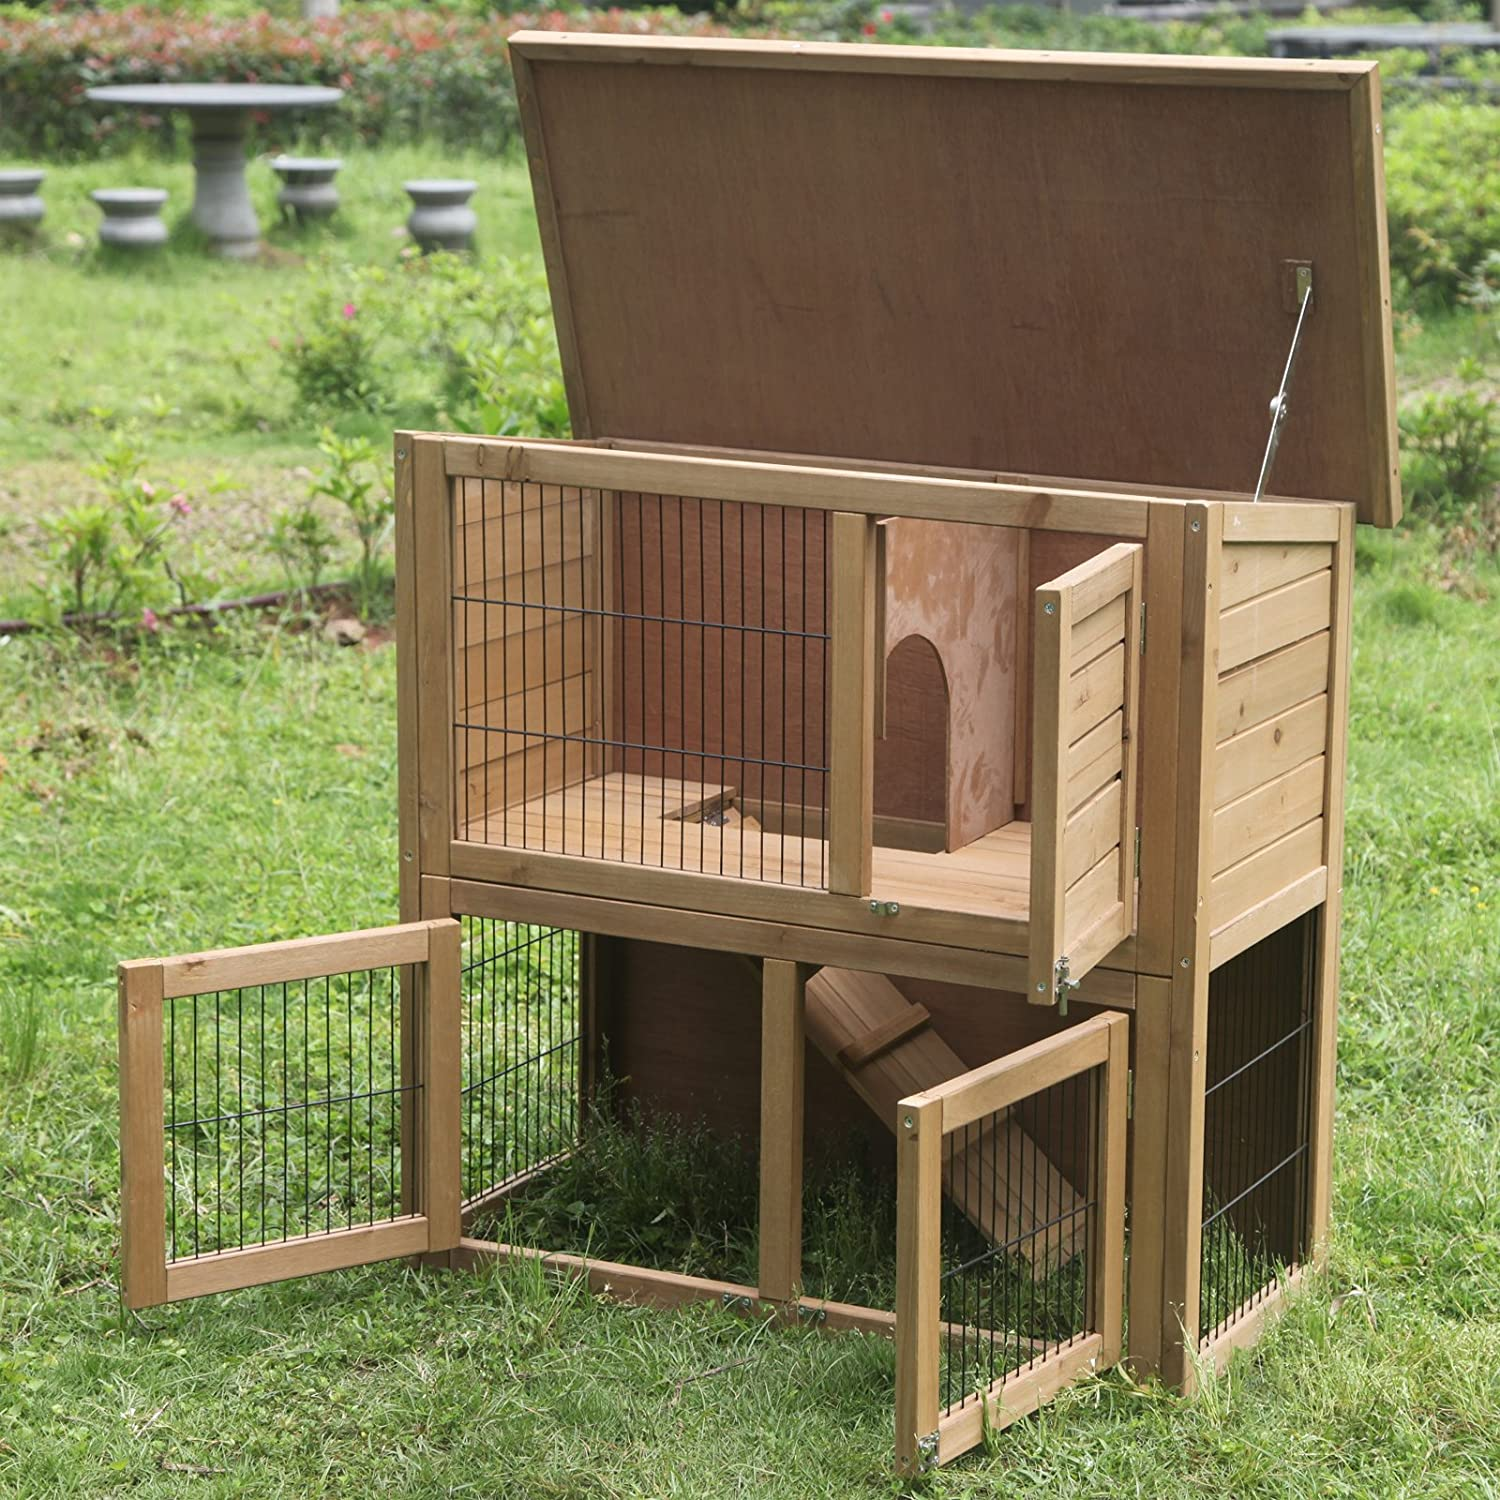 new pet handmade hutch animal itm small house sale bunny rabbit for details maple brown hutches habitat cage indoor